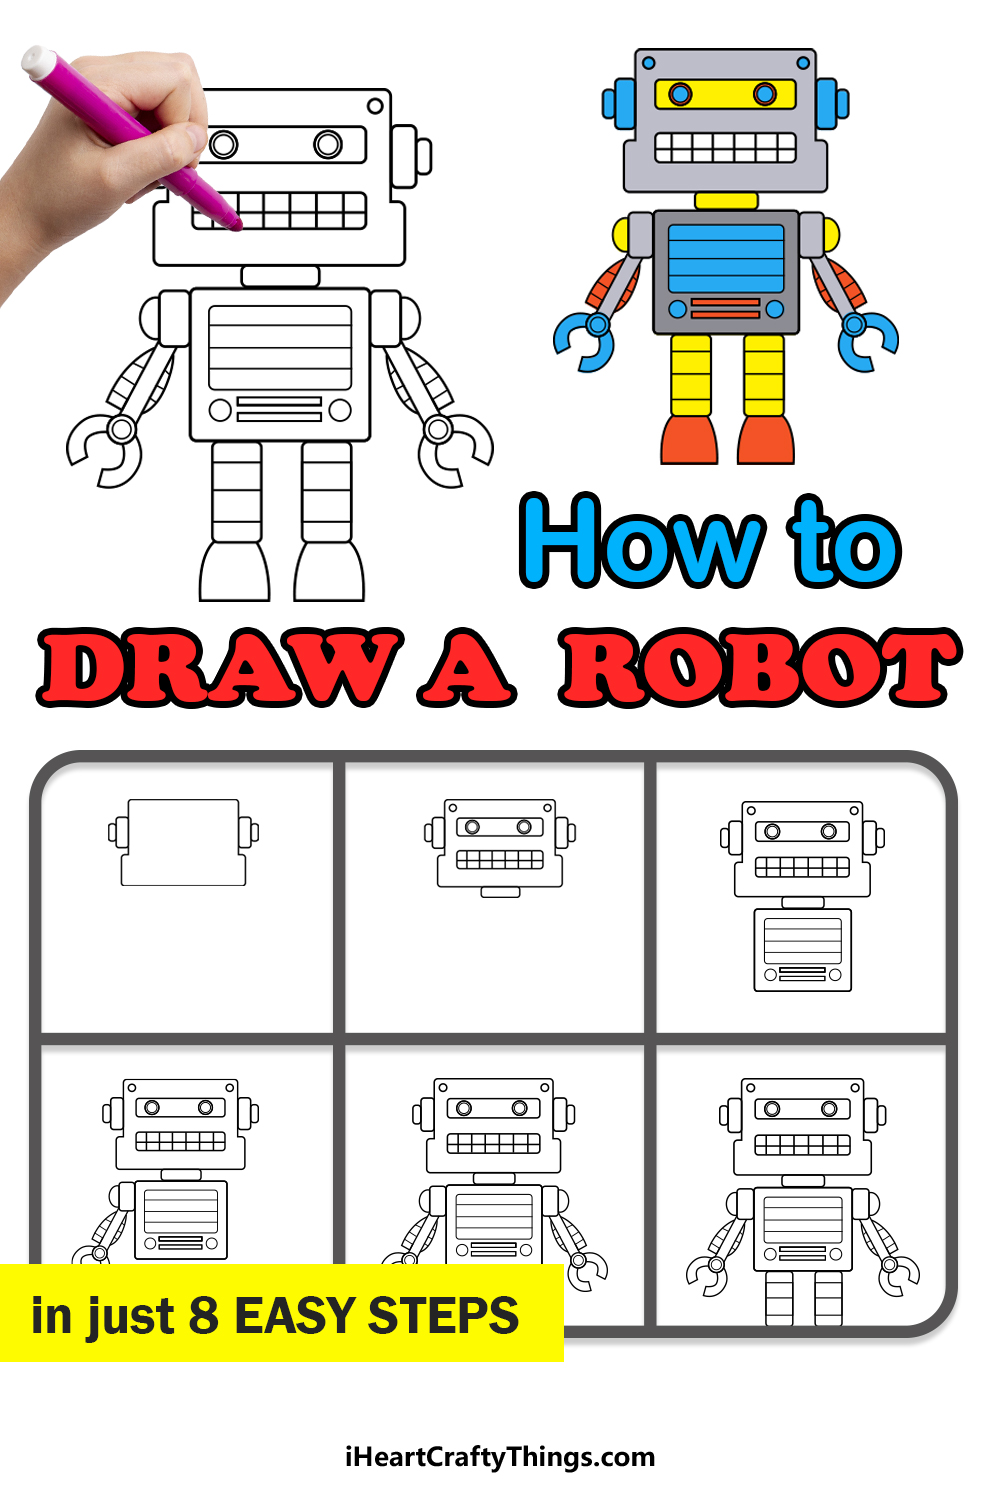 how to draw a robot in 8 easy steps